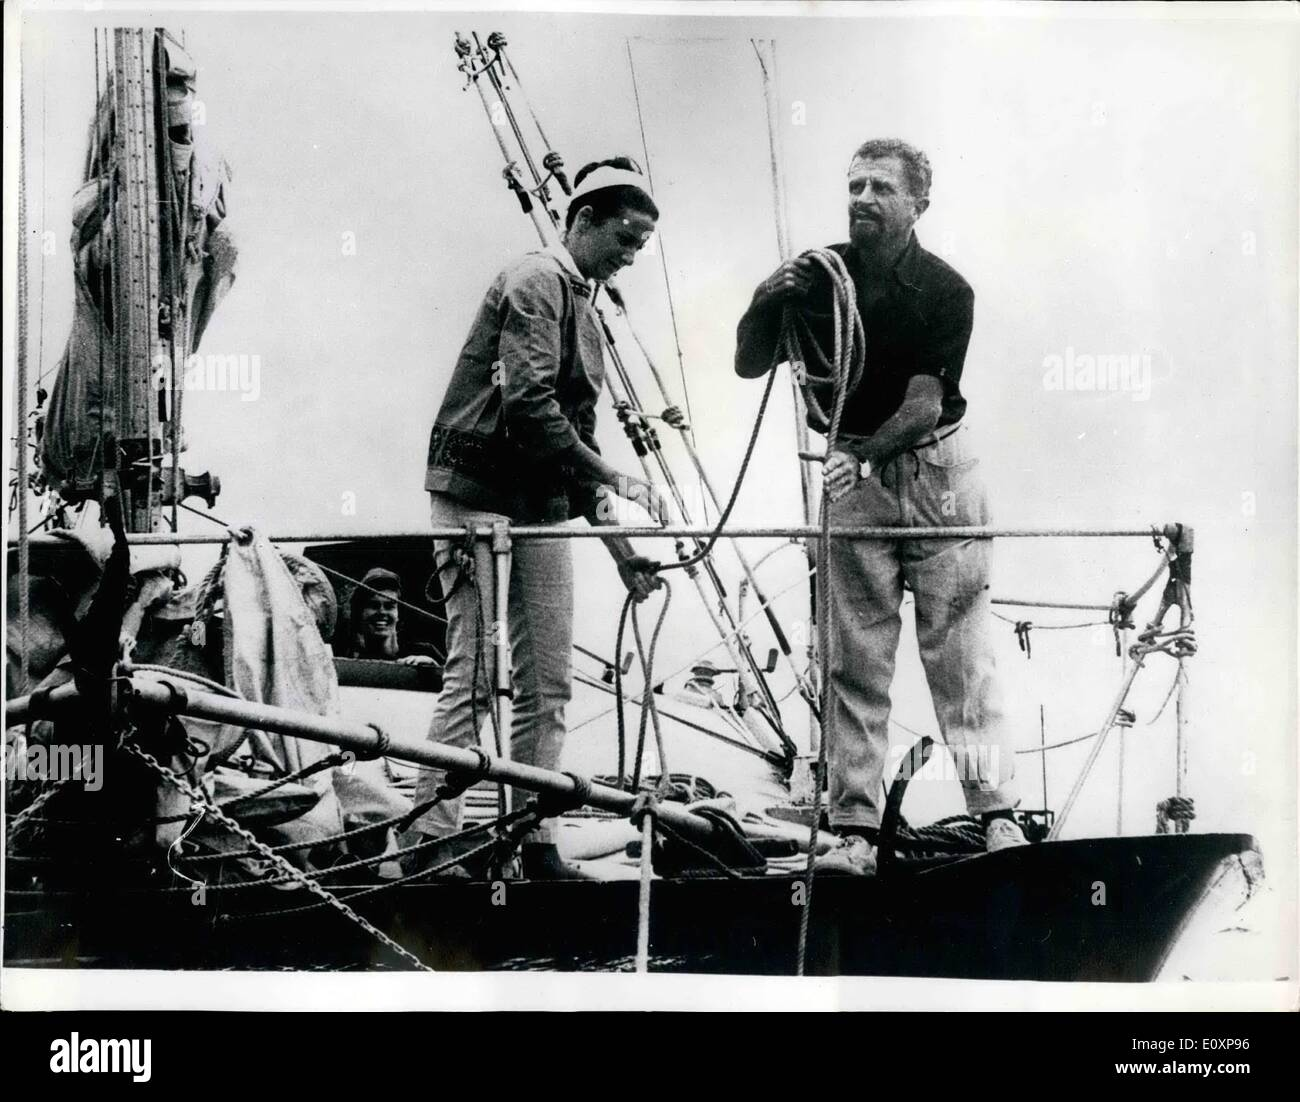 Jul. 07, 1967 - Round the world catamaran arrives home: Dr. David Lewis, 48, and his wife, Fiona, arrived at Plymouth the yesterday at the end of his three year around the world voyage of 38,000 miles, in the 42ft. catamaran, Reuben moans. on board with them wears their children susin, 5, and Vicky 4, and Miss Priscilla cairns, 34 . who acted as navigater from Tahiti, Mrs. Lewis and the children joined the best in New York on her outward journey. Photo Shows Mrs. Fiona Lewis and Dr. David Lewis, 'make fast' the cameraman ''Rehu Moana'' in Plymouth Sound yesterday - Stock Image